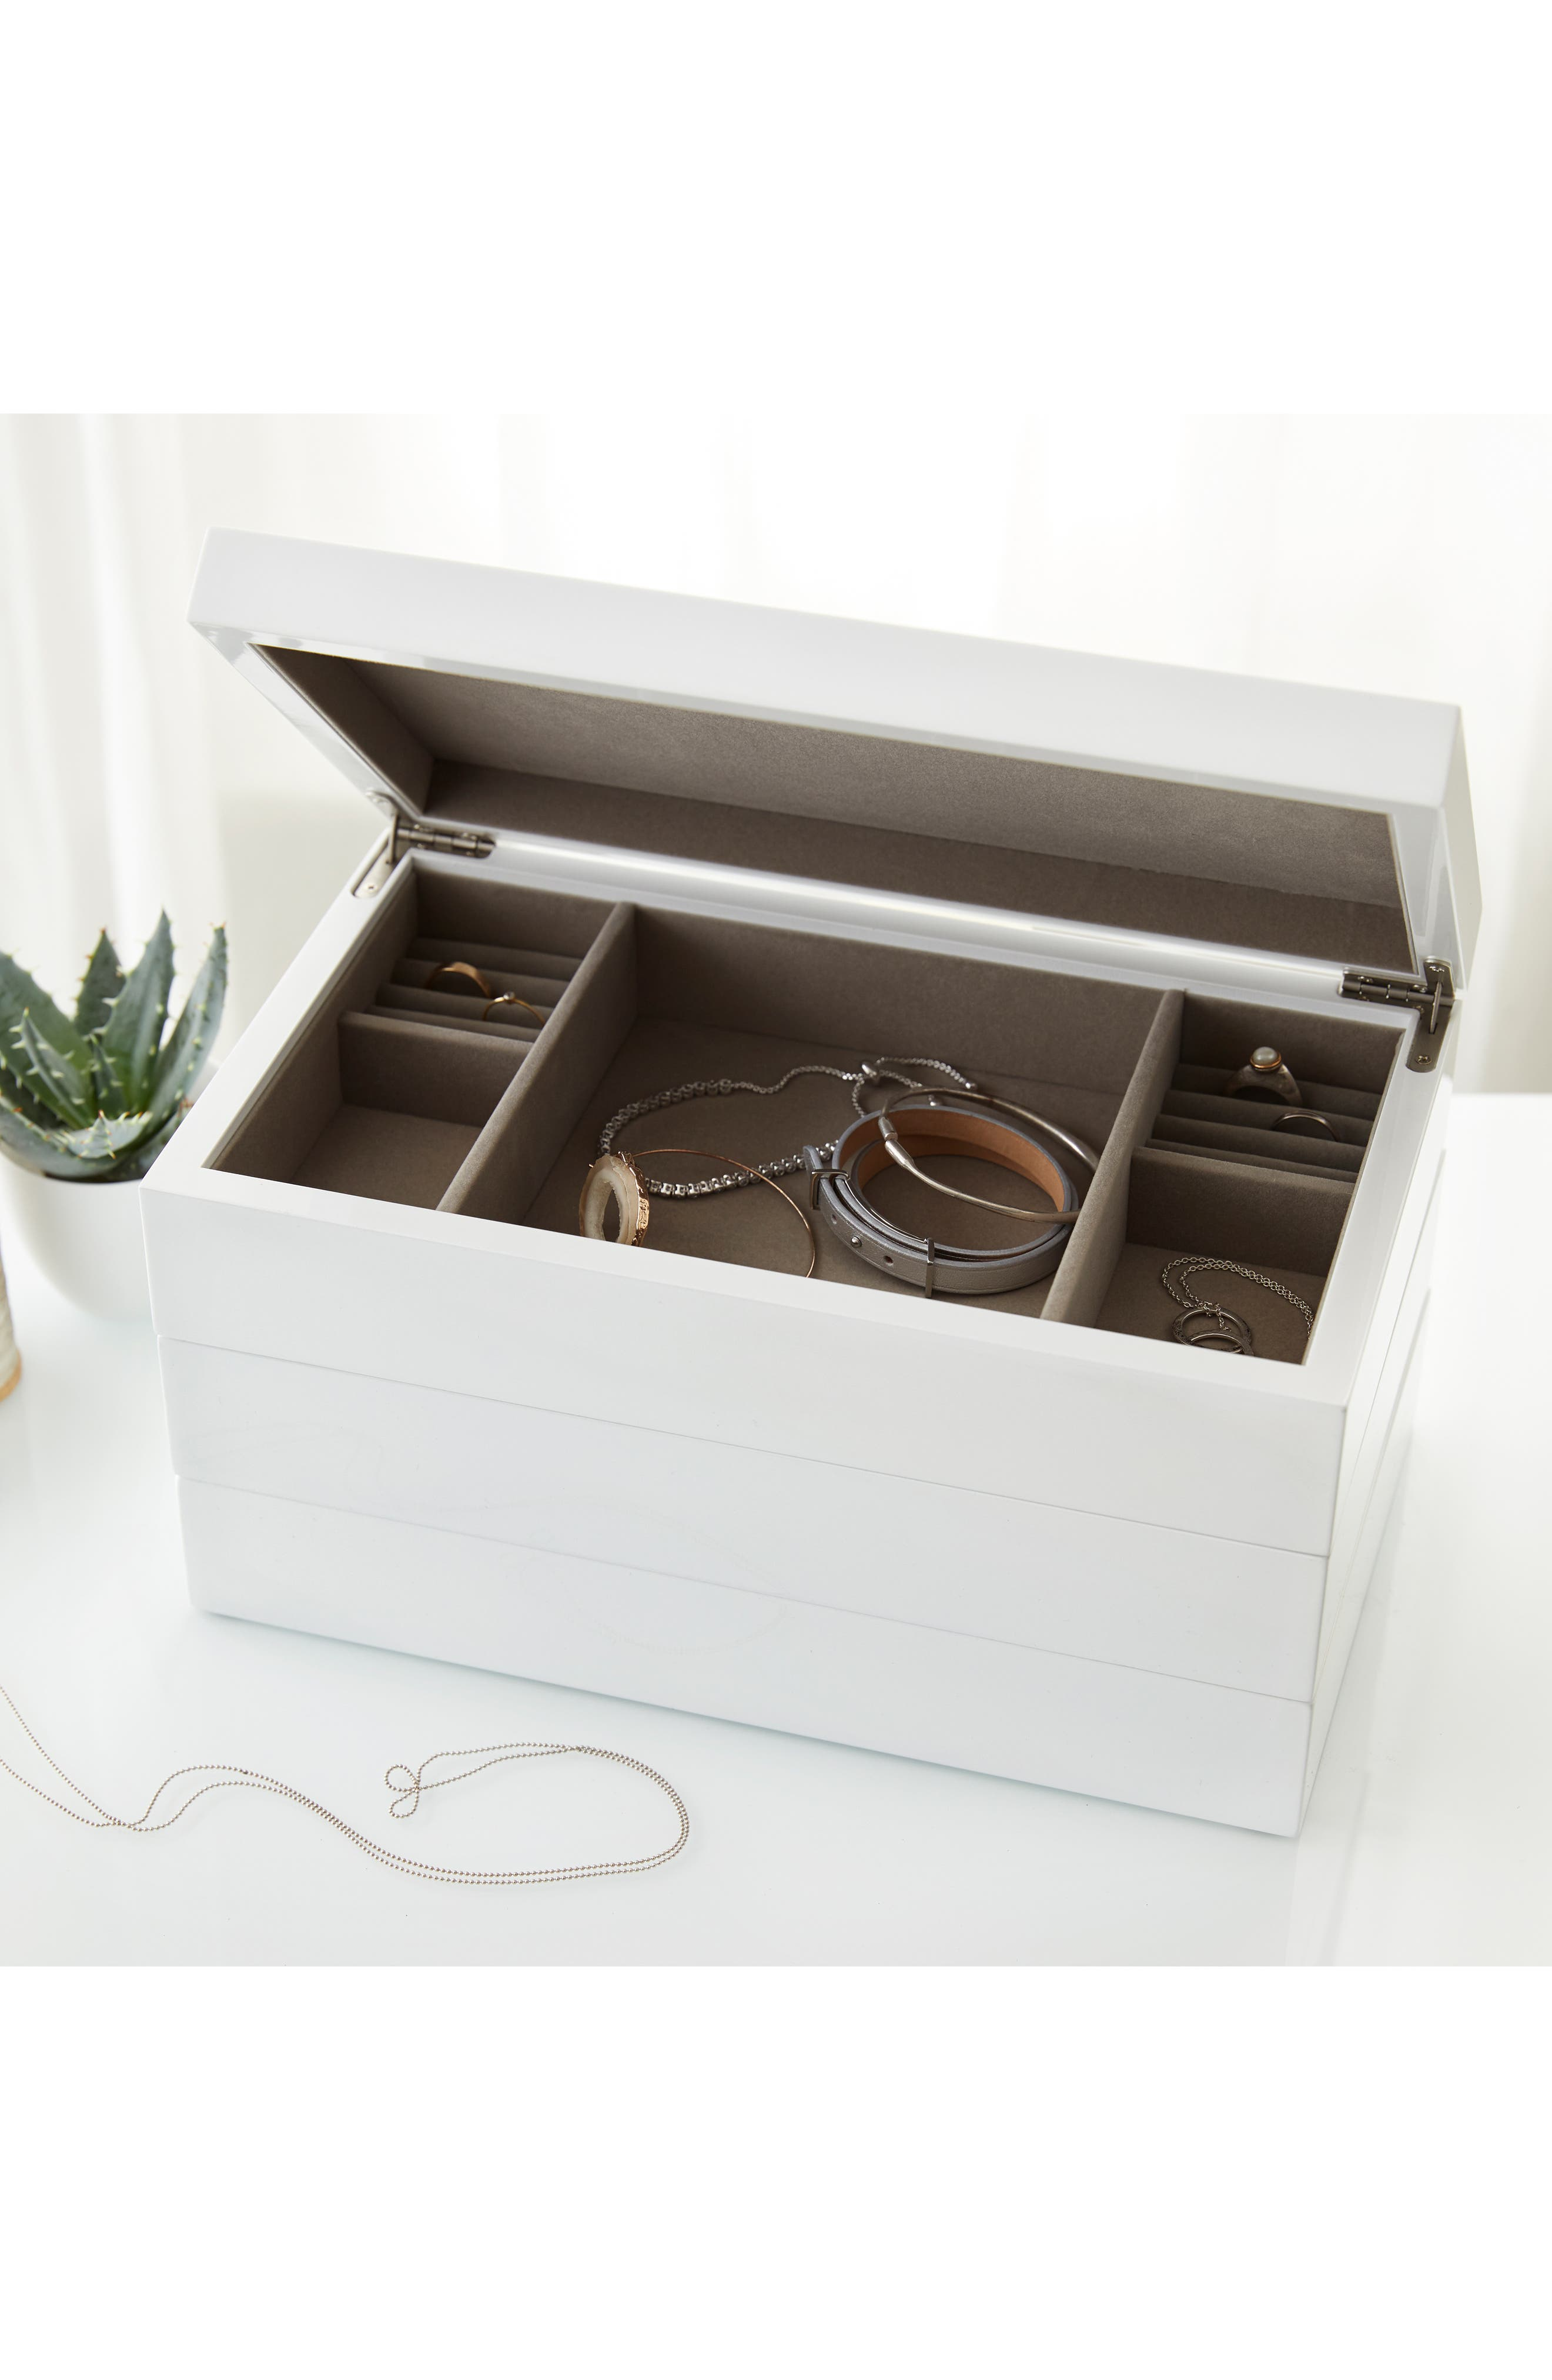 Lacquer Jewelry Box,                             Alternate thumbnail 2, color,                             100